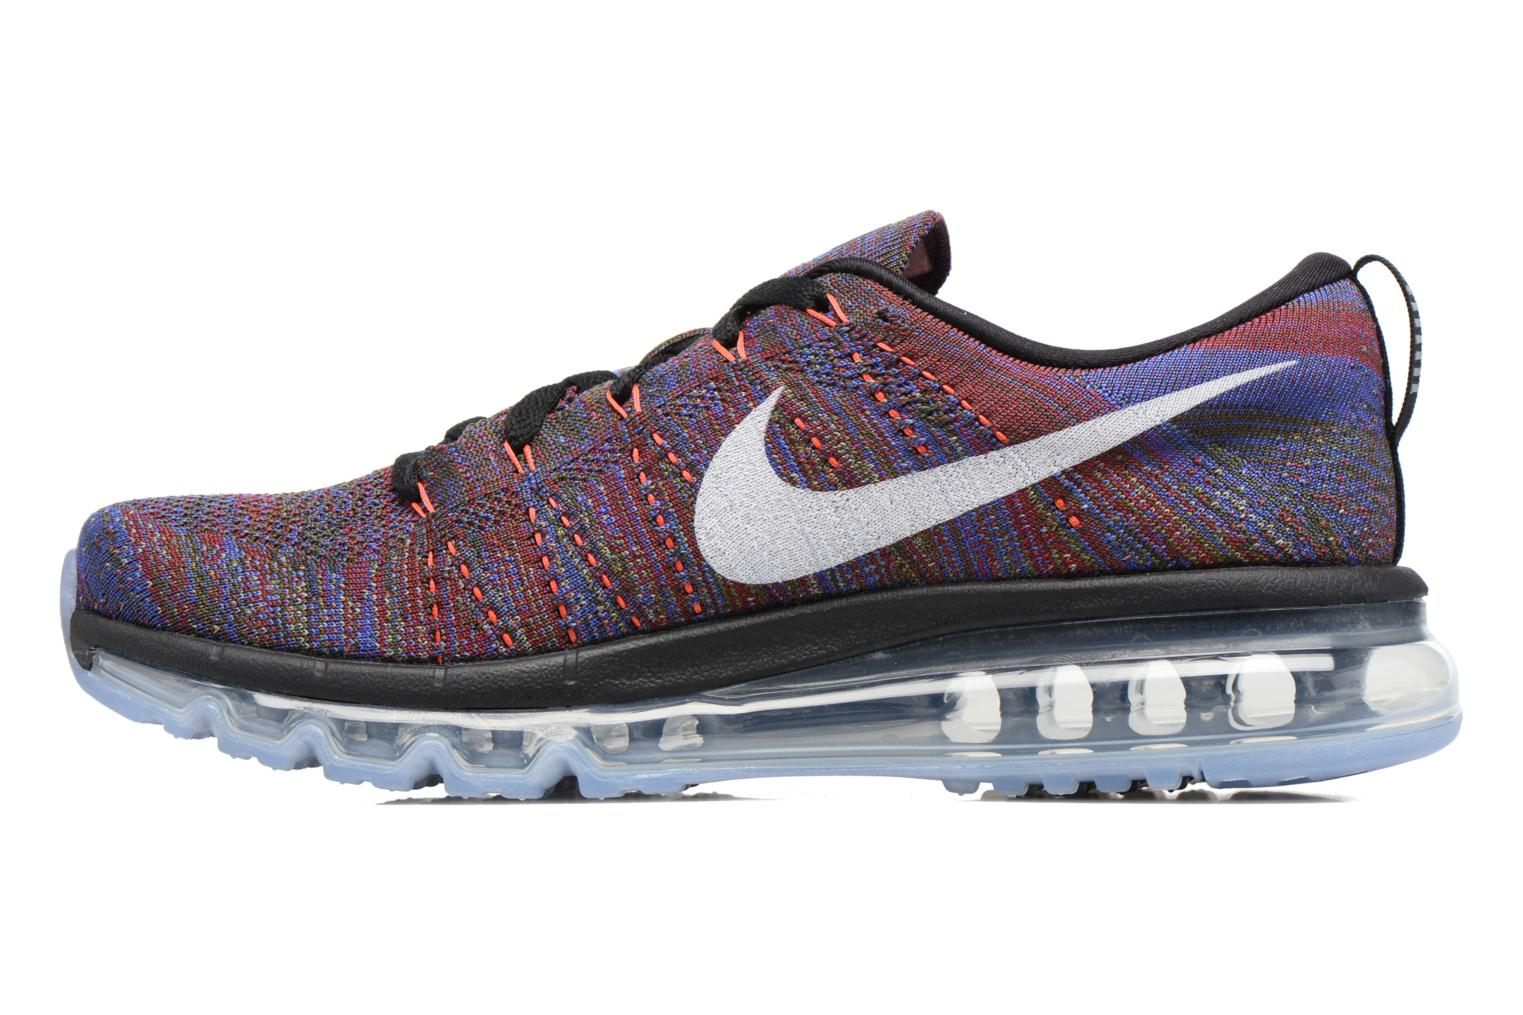 Chaussures de sport Nike Nike Flyknit Max Multicolore vue face